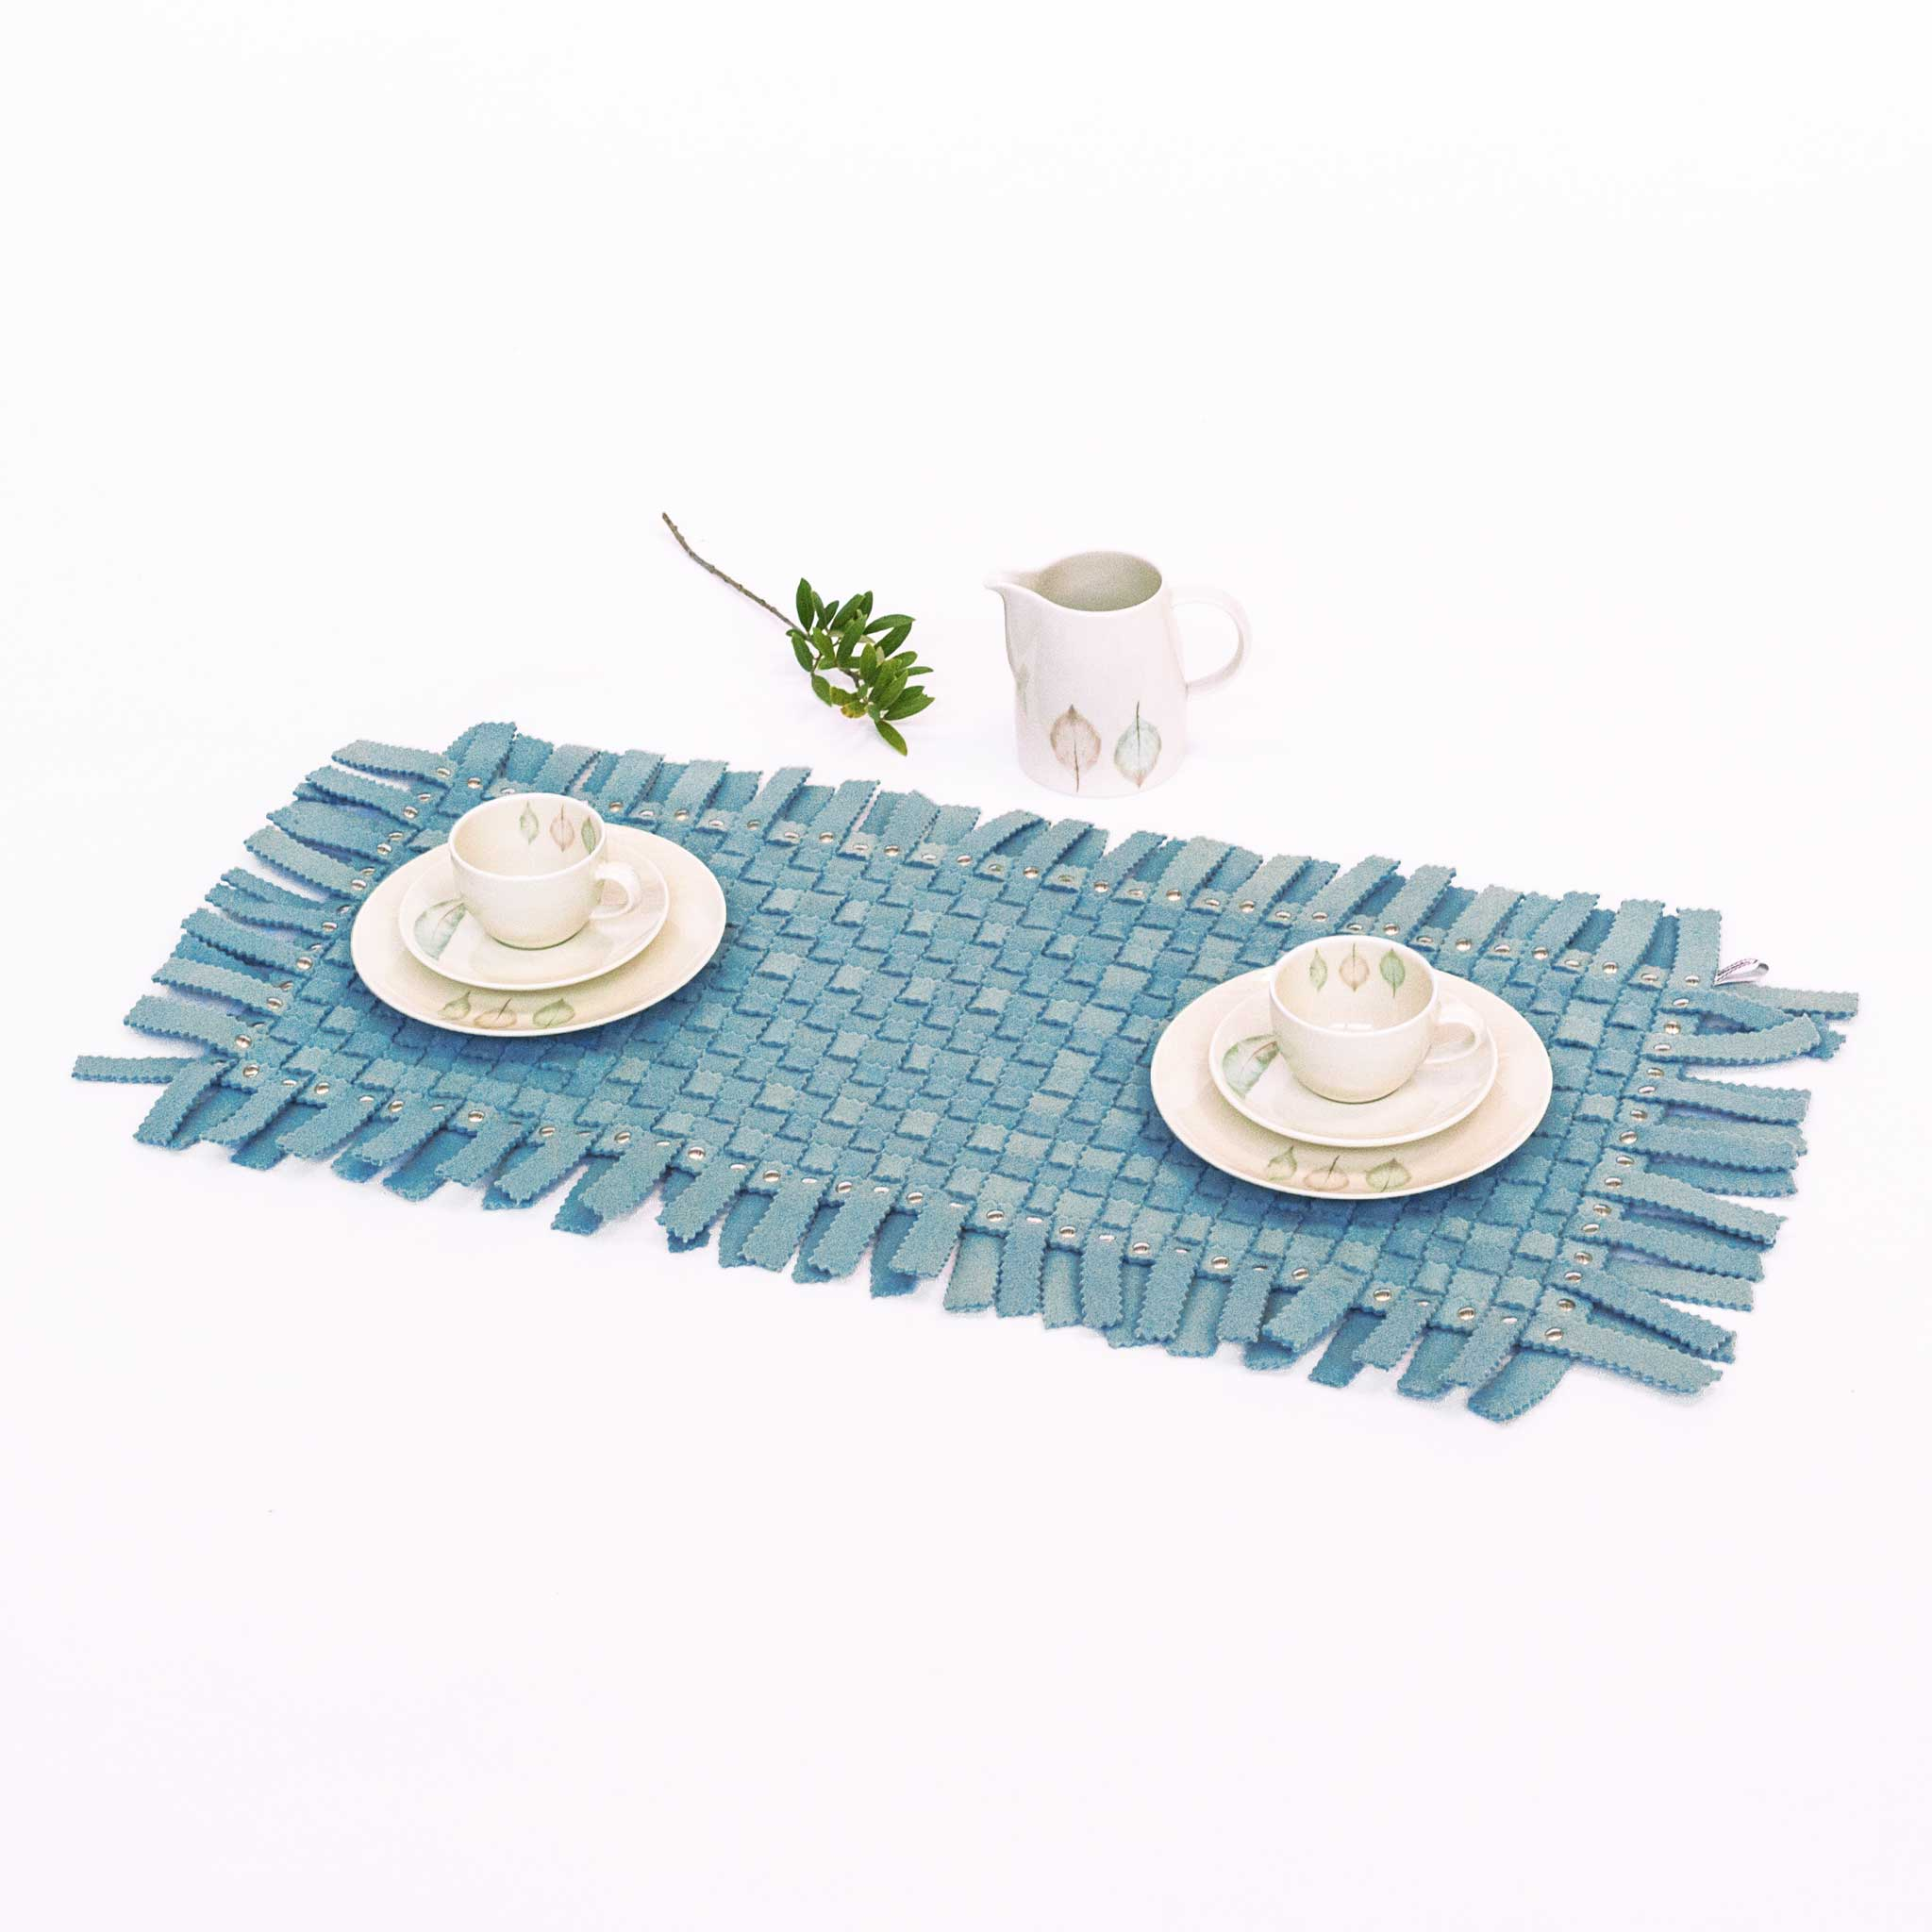 Table runners - Pack 2 units